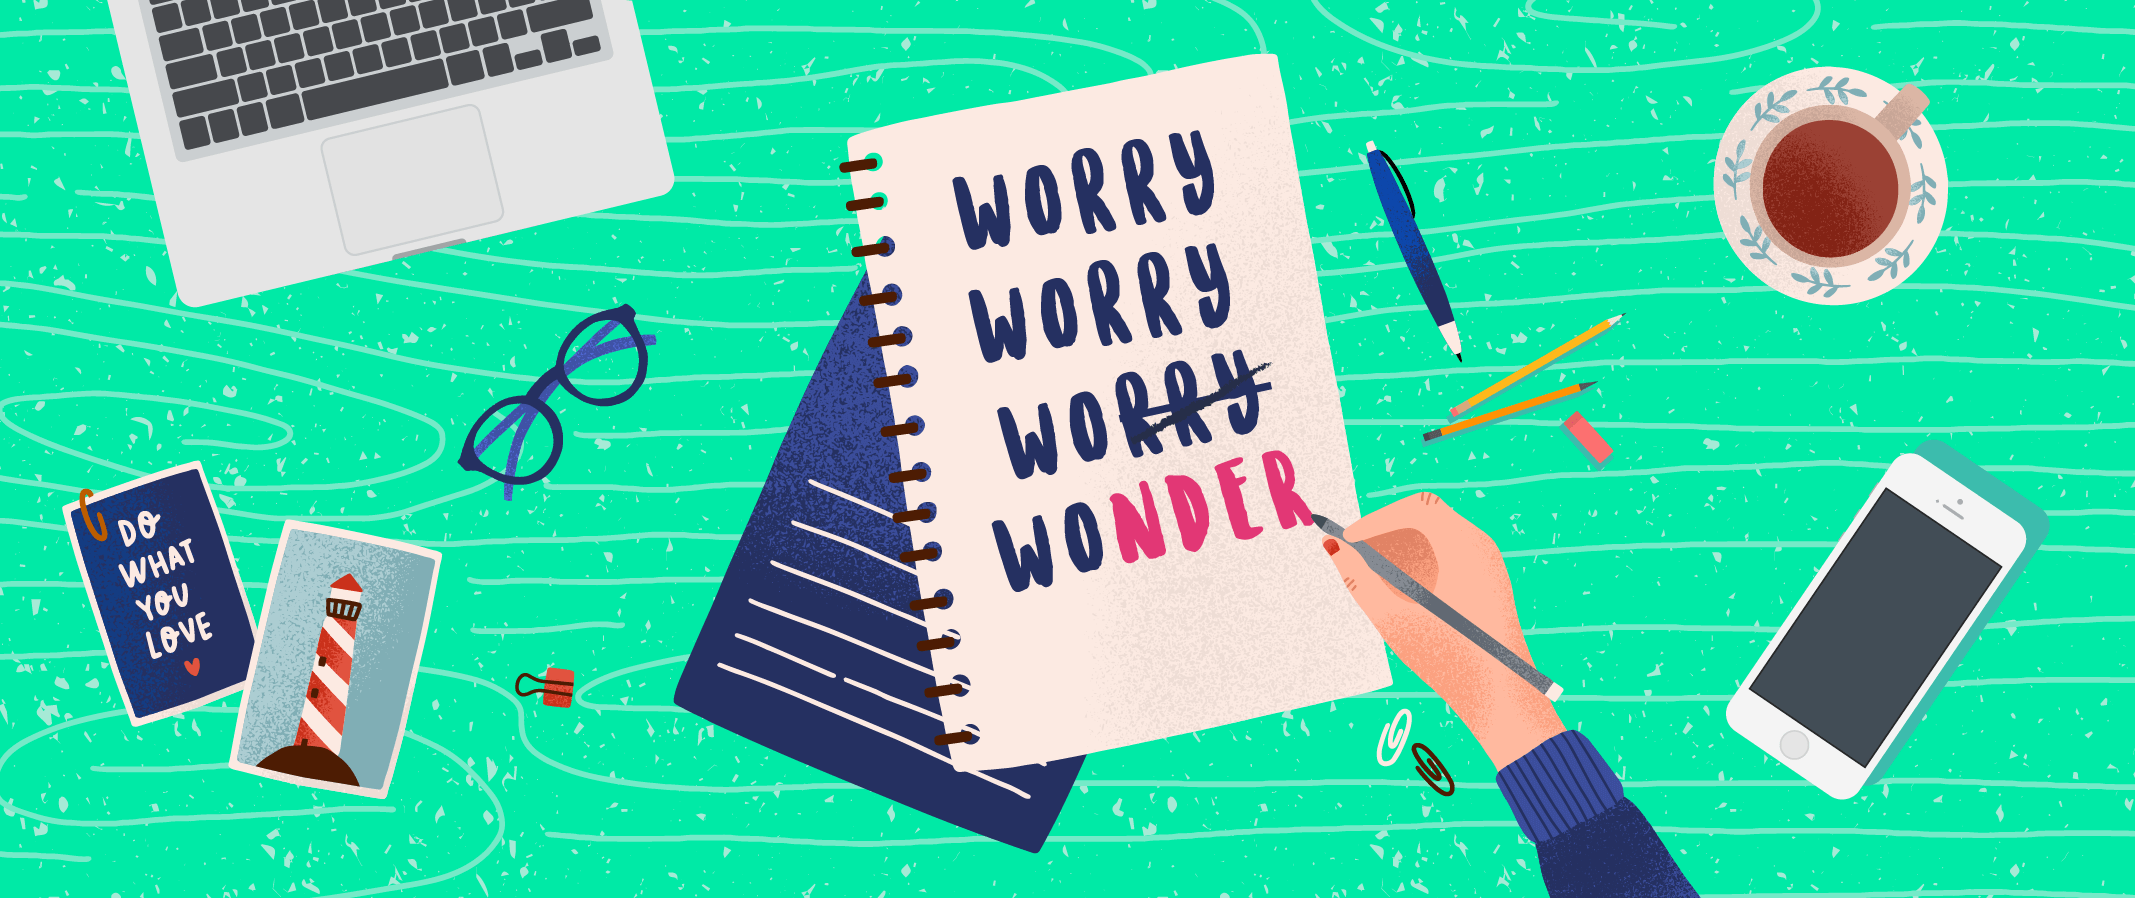 Turning Worry Into Wonder: How to Reframe Your State of Mind